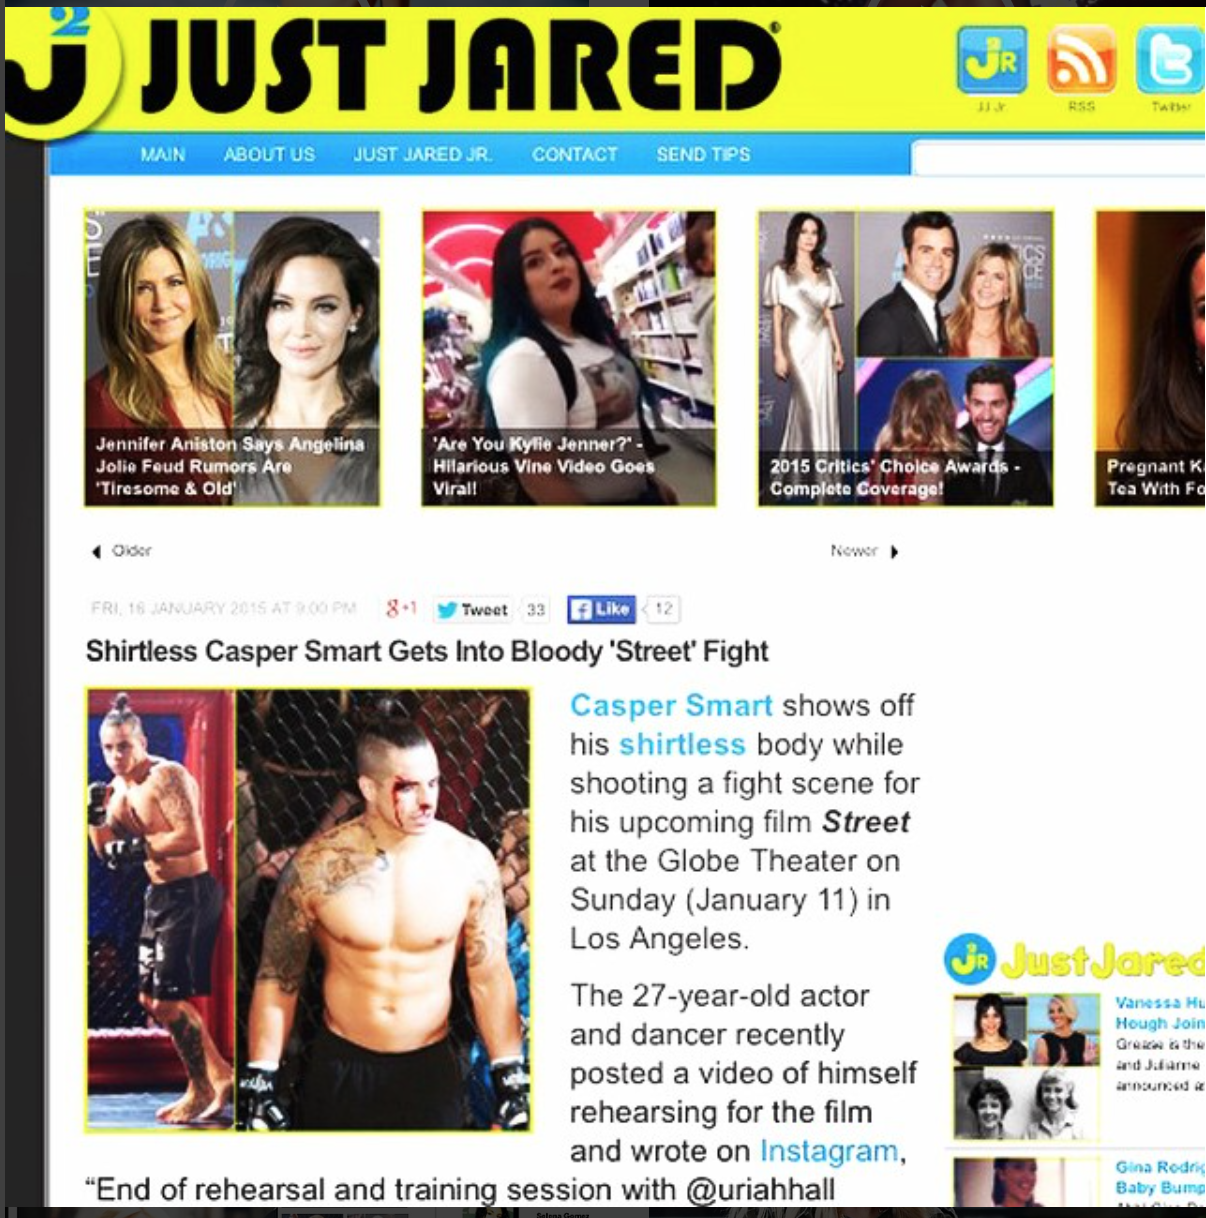 138 Water in JustJared